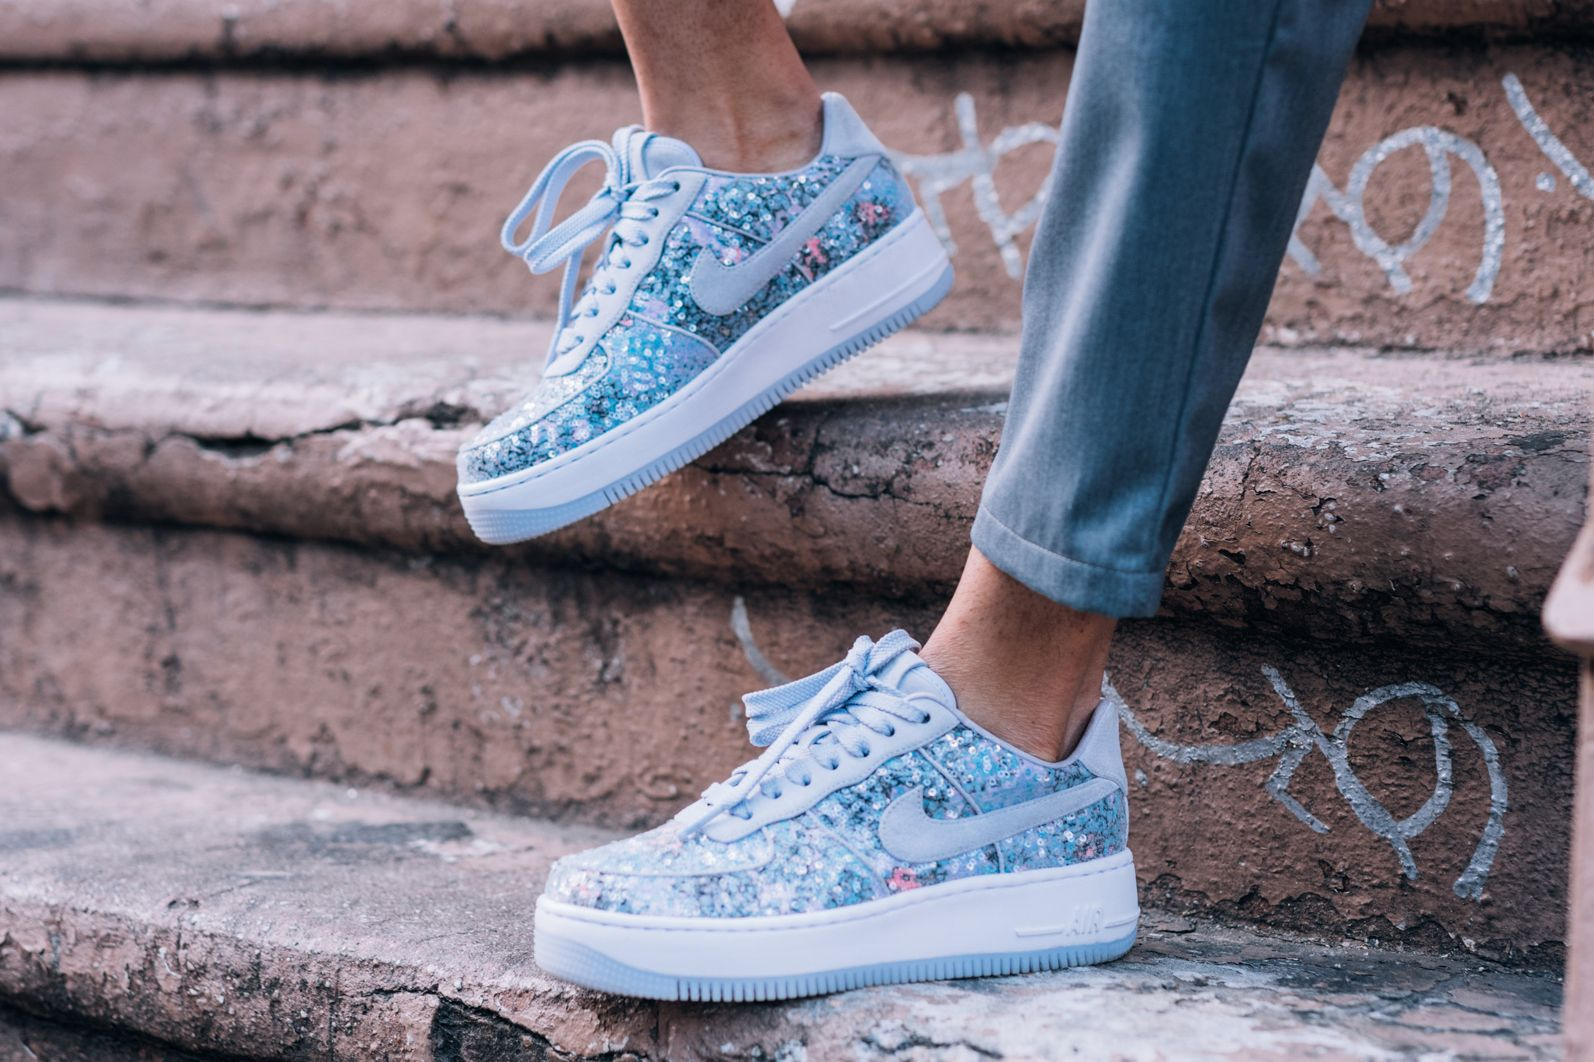 Nike's Air Force 1 Upstep Low Gets a Fairytale Cinderella